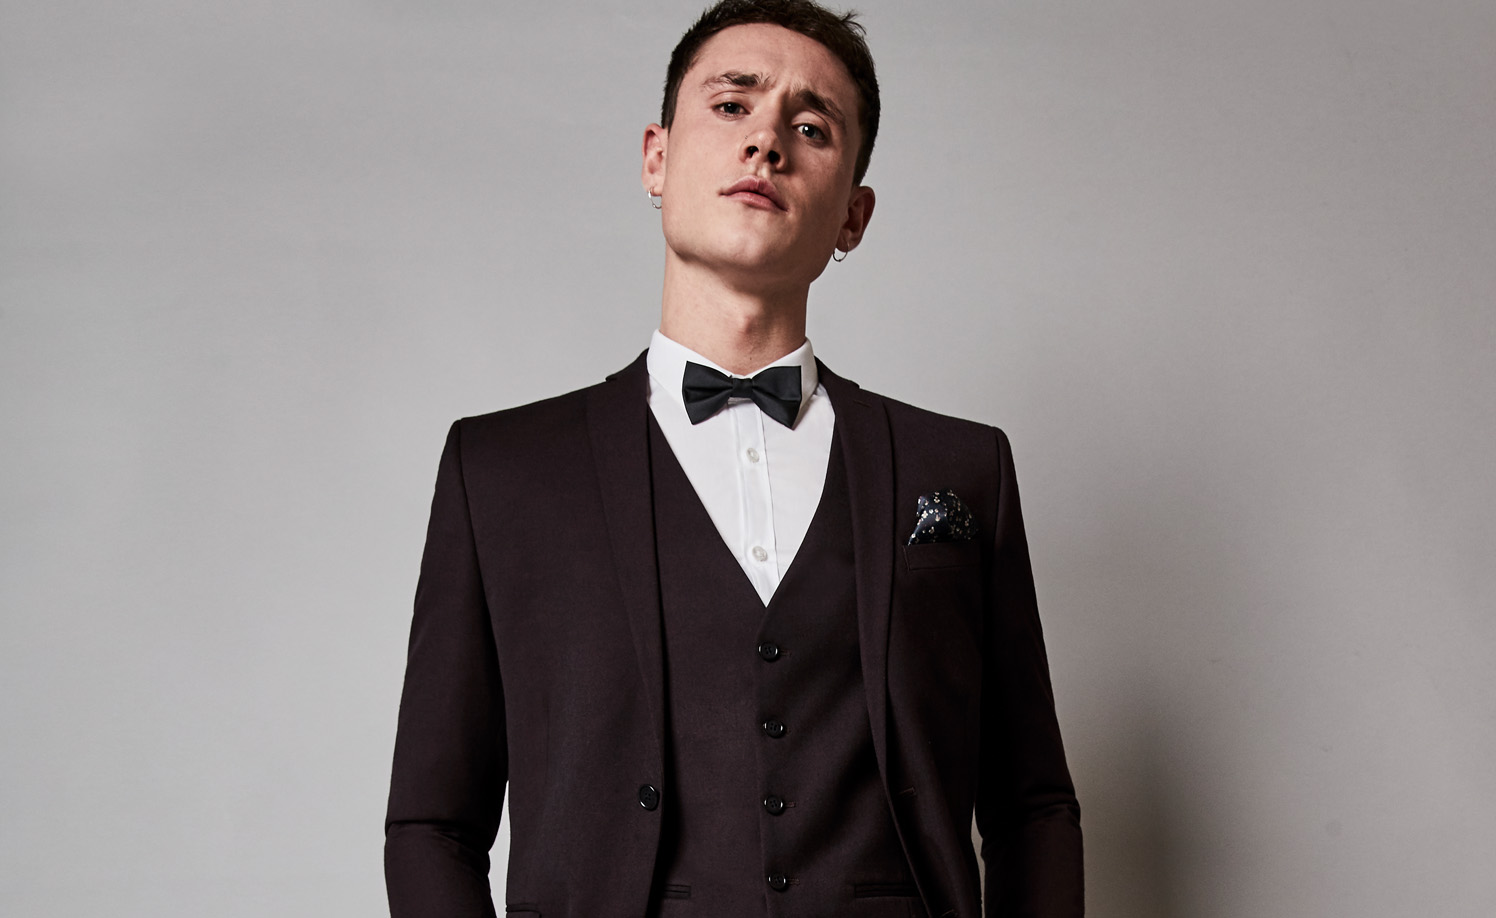 How to Buy Your First Suit